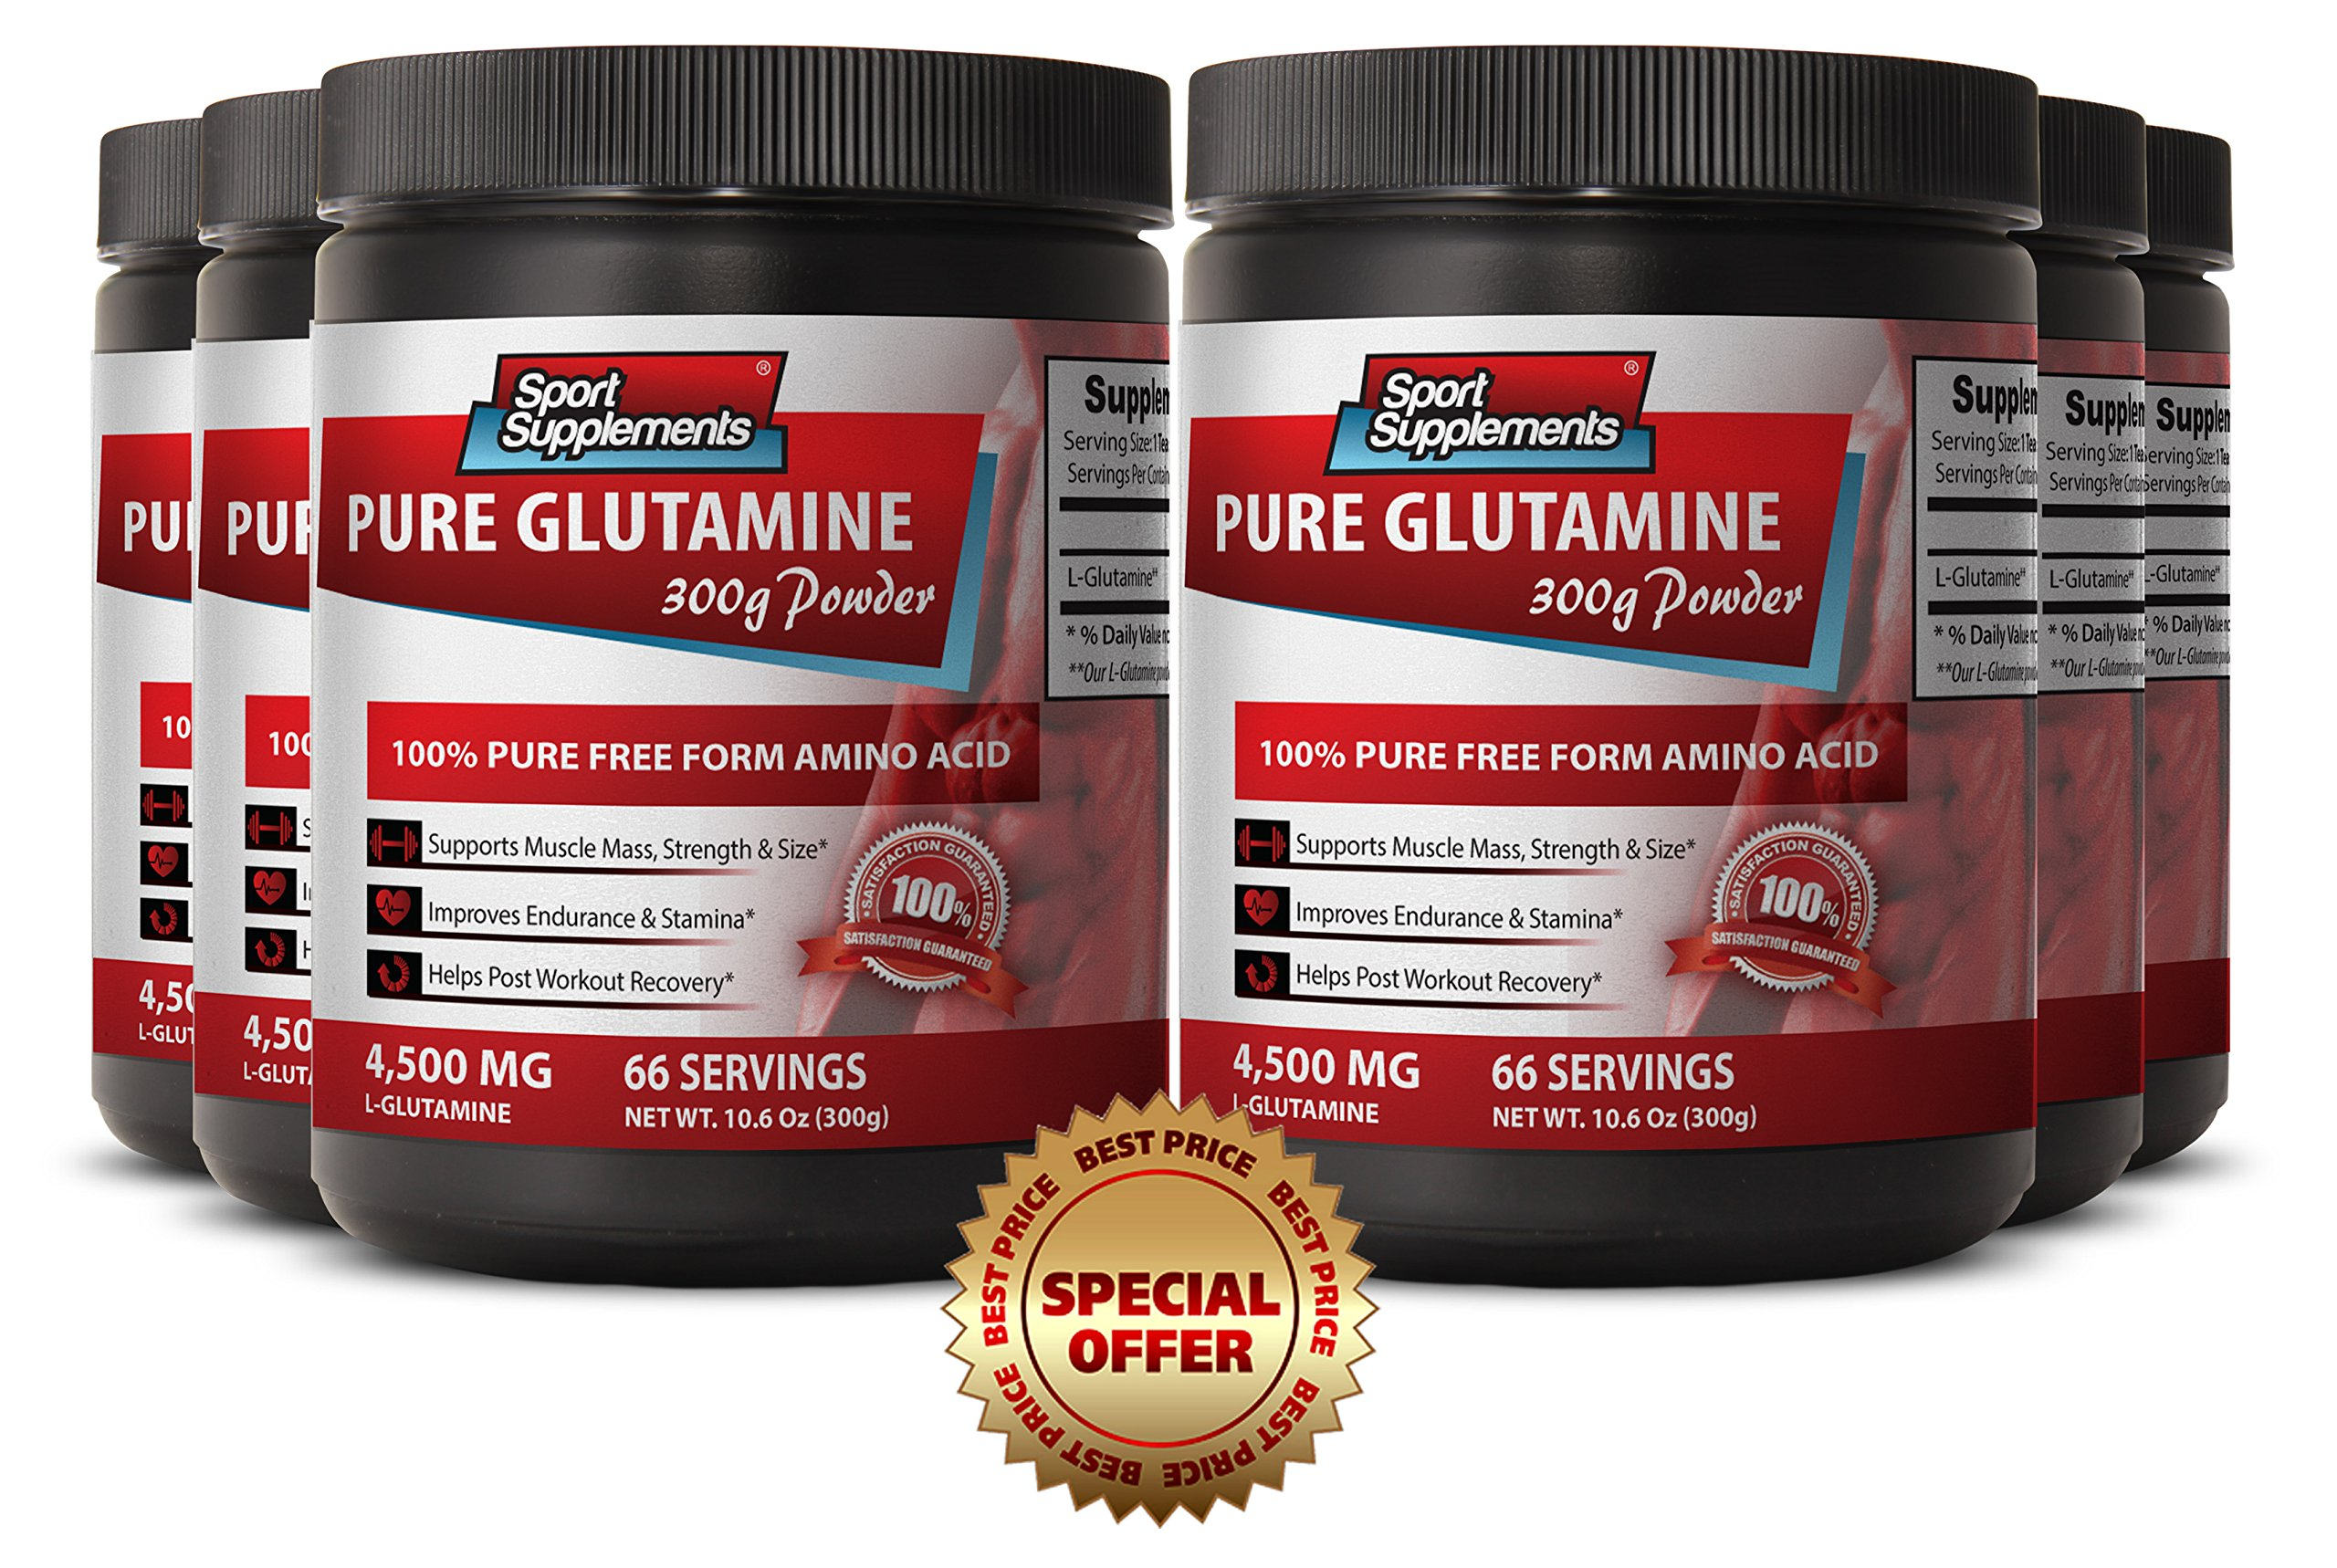 L glutamine women - L-GLUTAMINE POWDER 300g - Speeds wound healing (6 Bottles)